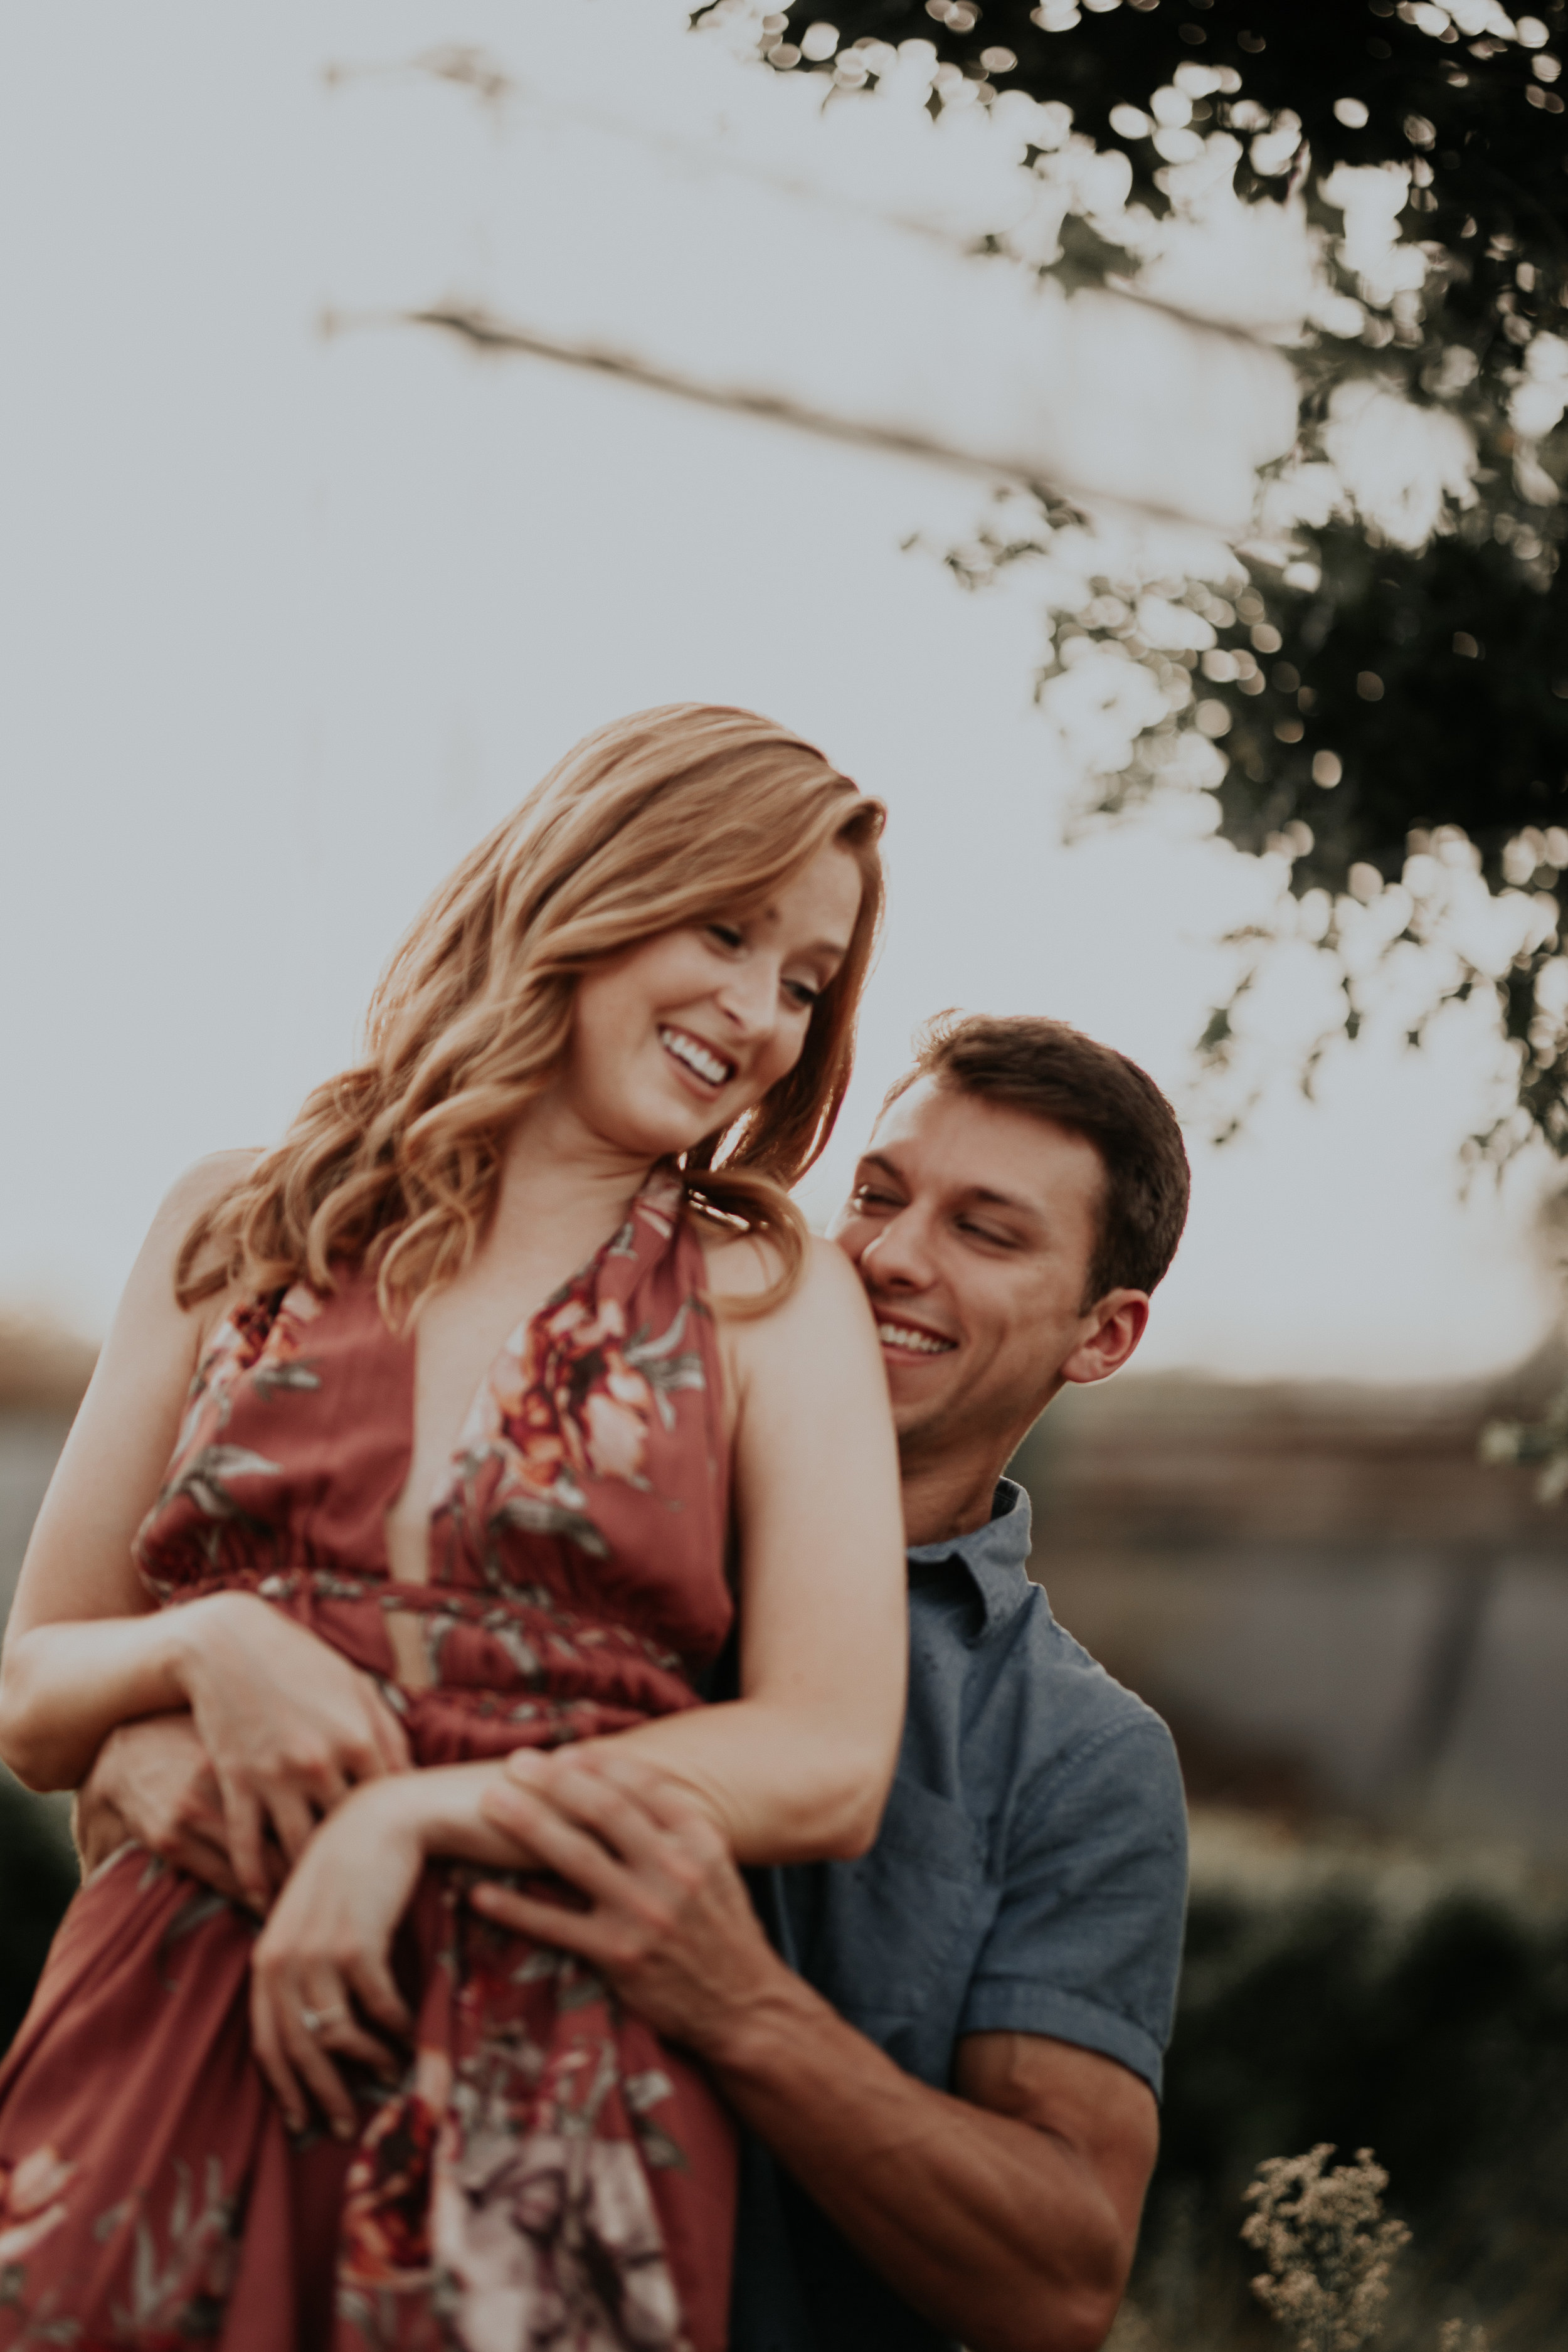 katie and brandon _ engagement session _ 08-5-1700138.jpg